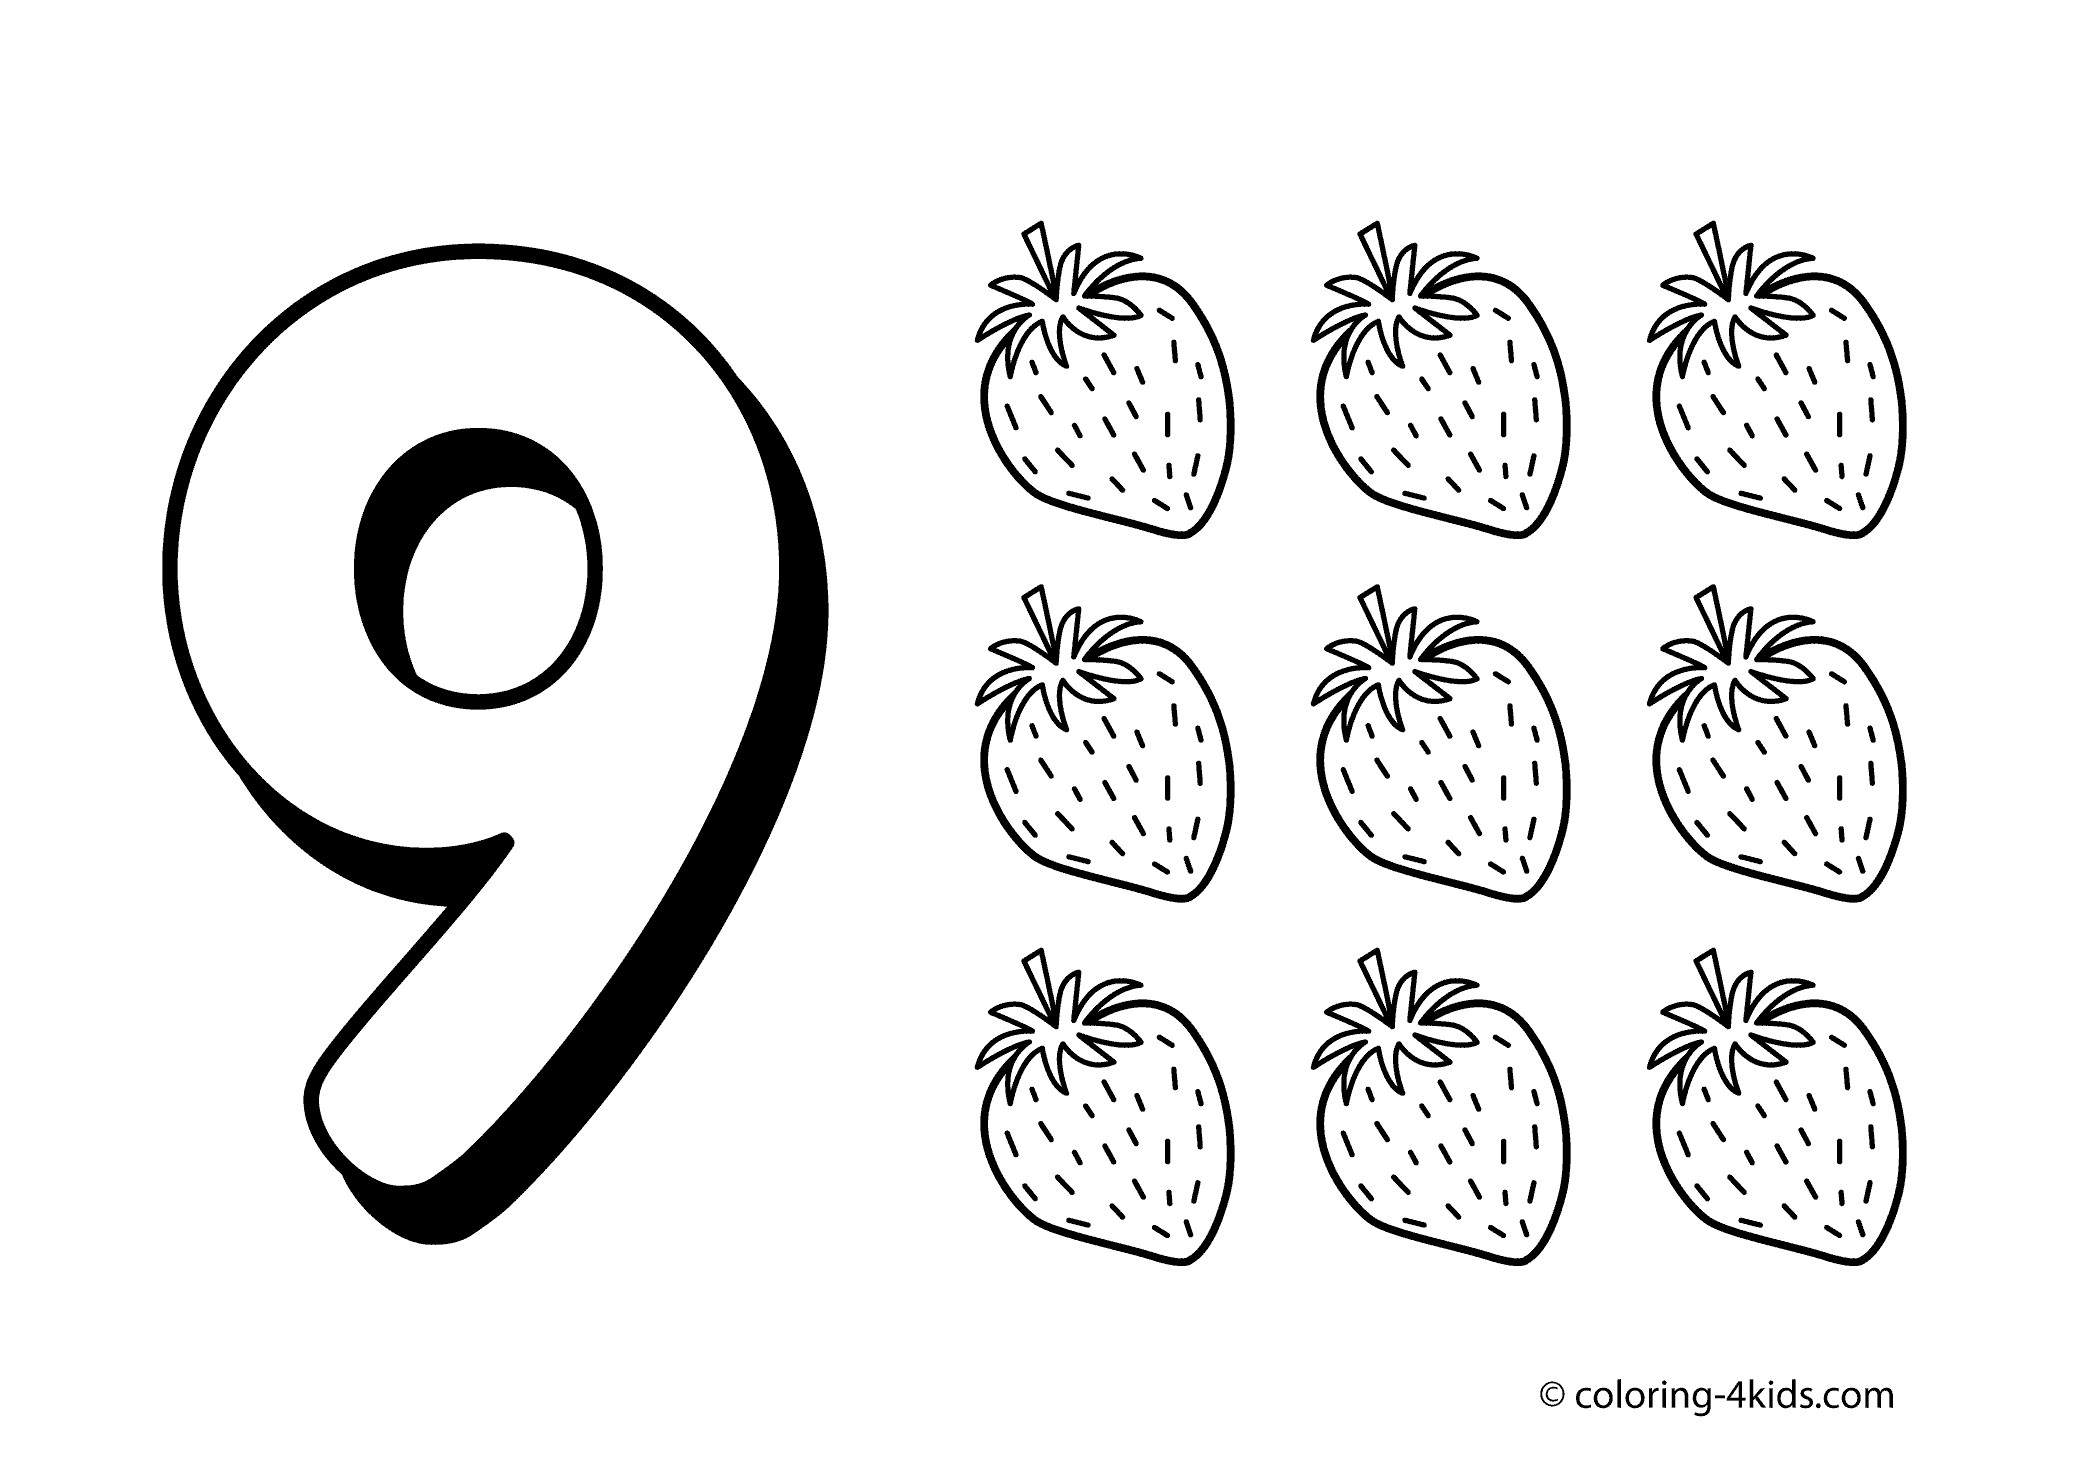 Preschool Number Coloring Pages Collection